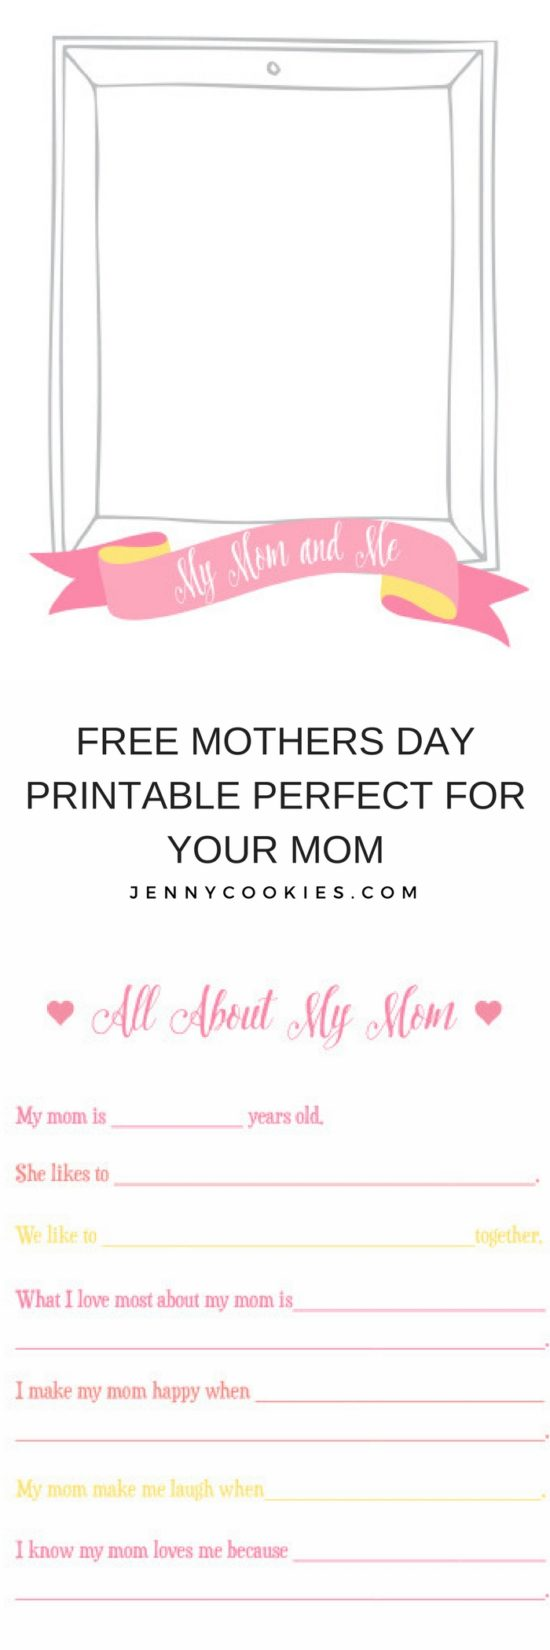 Free Printable Mother's Day Card | diy Mother's Day card || JennyCookies.com #printablecard #mothersdaycard #freeprintable